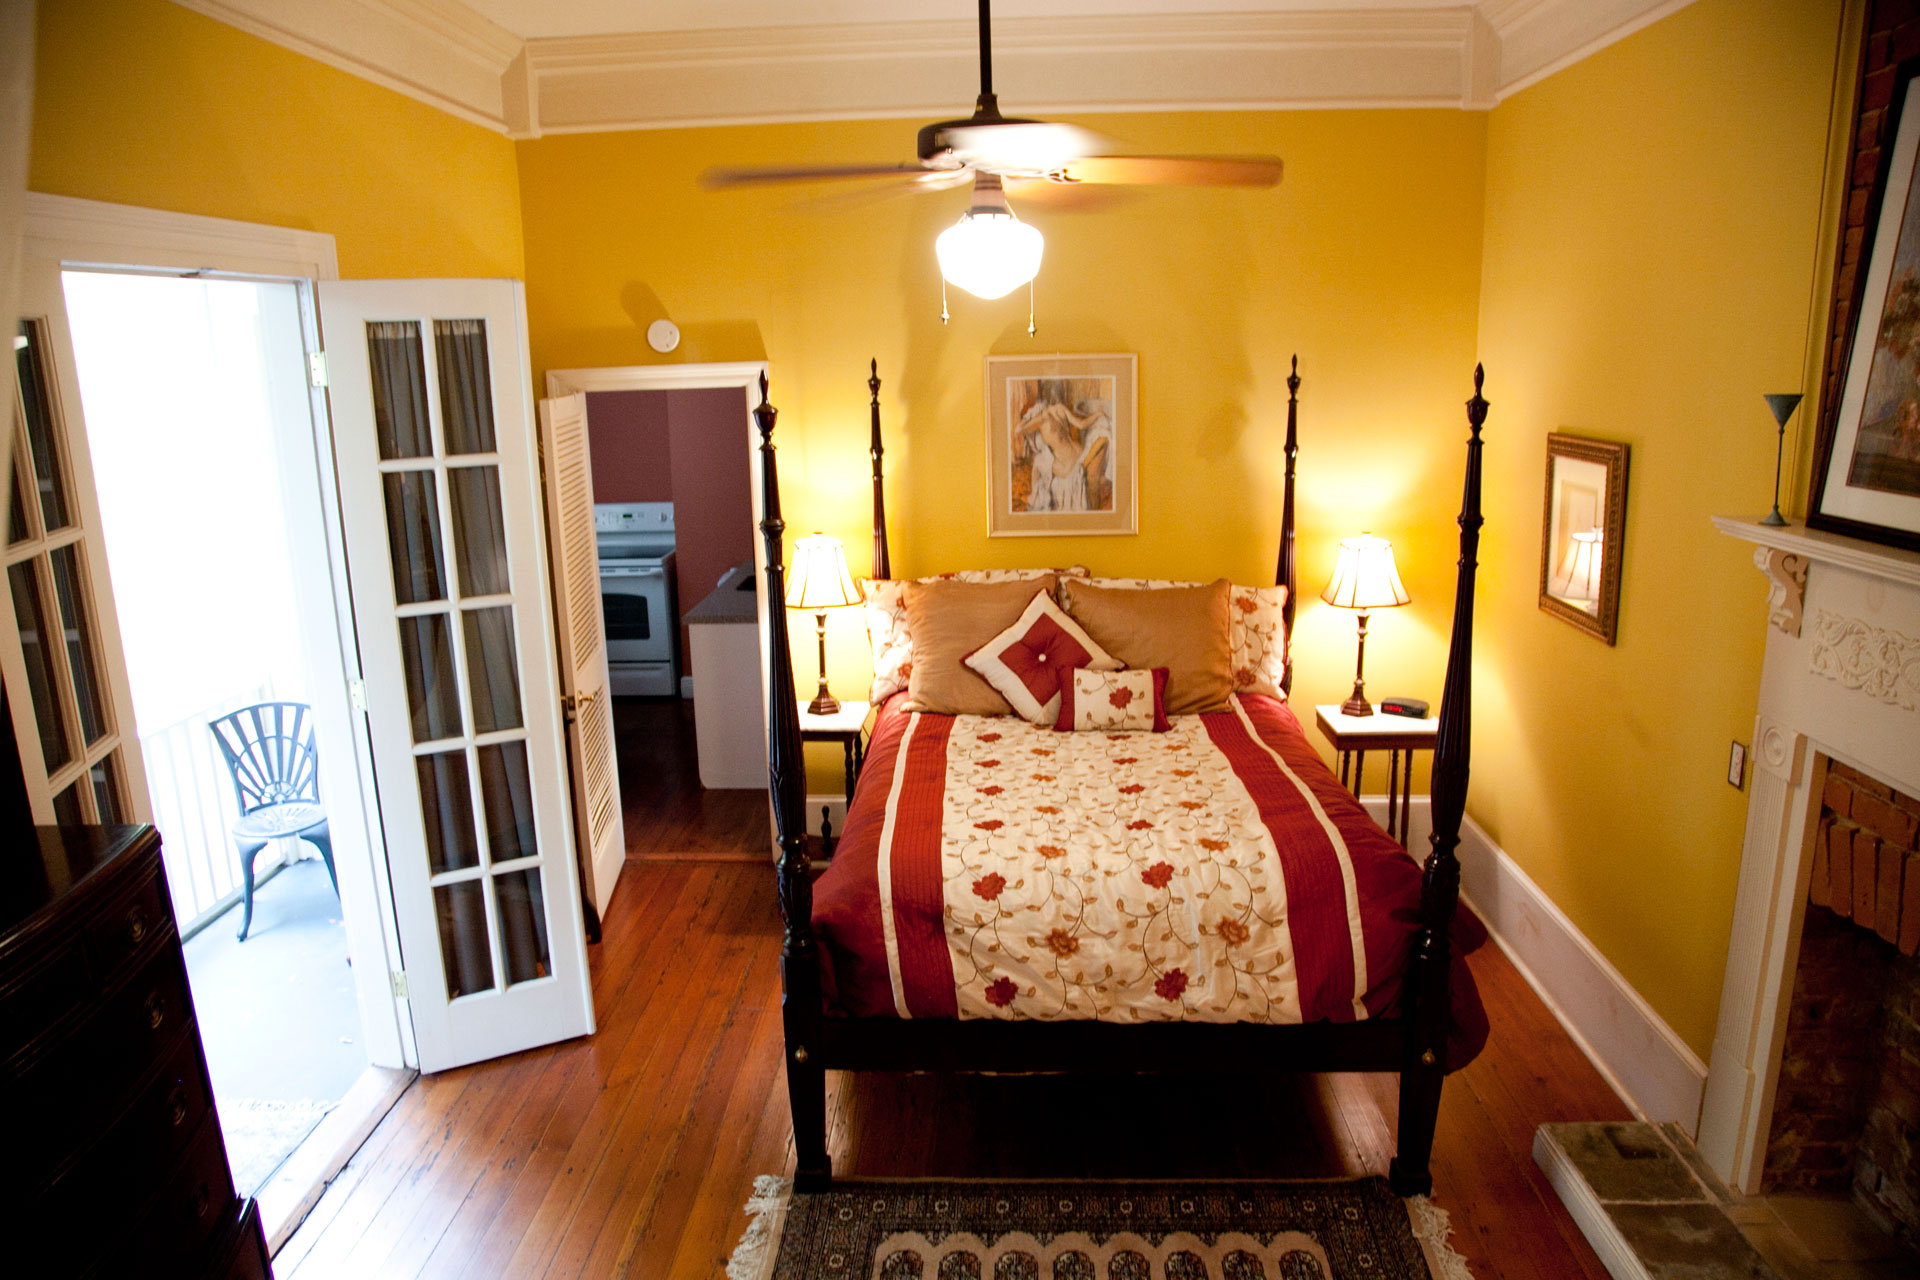 2 Bedroom Suites In New Orleans French Quarter 2018 Home